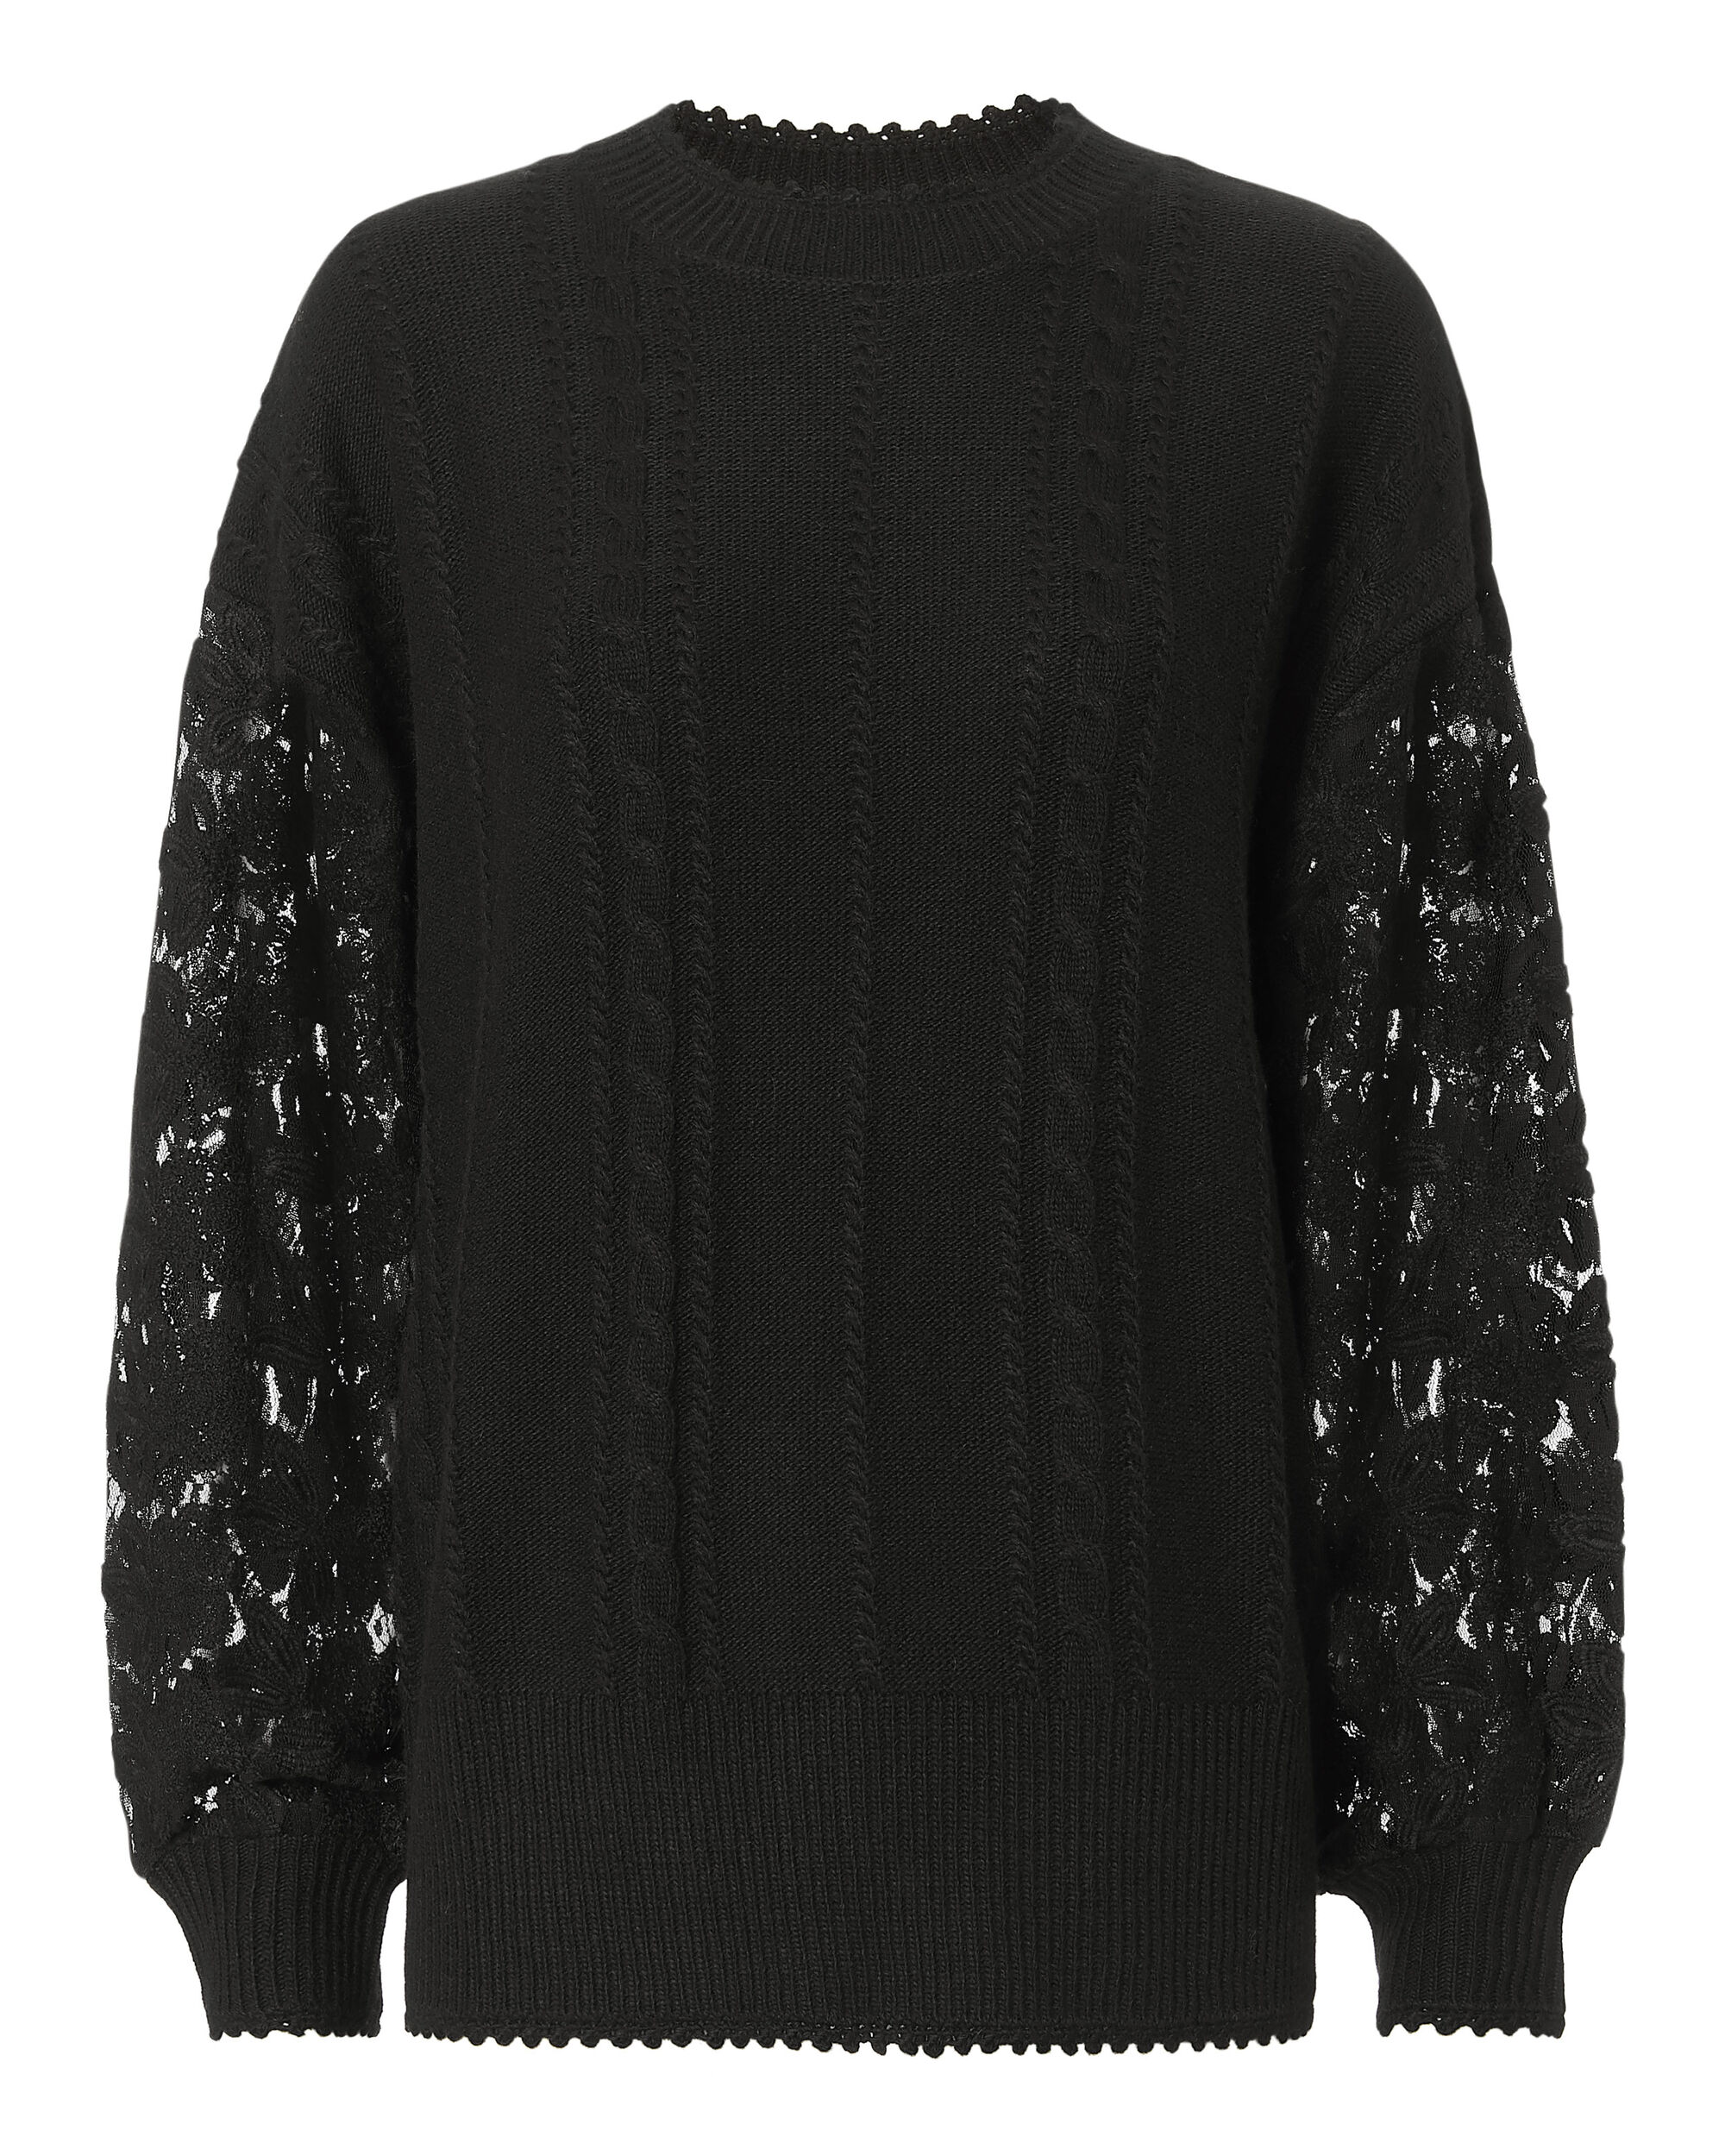 Lace Sleeve Pullover Sweater, BLACK, hi-res